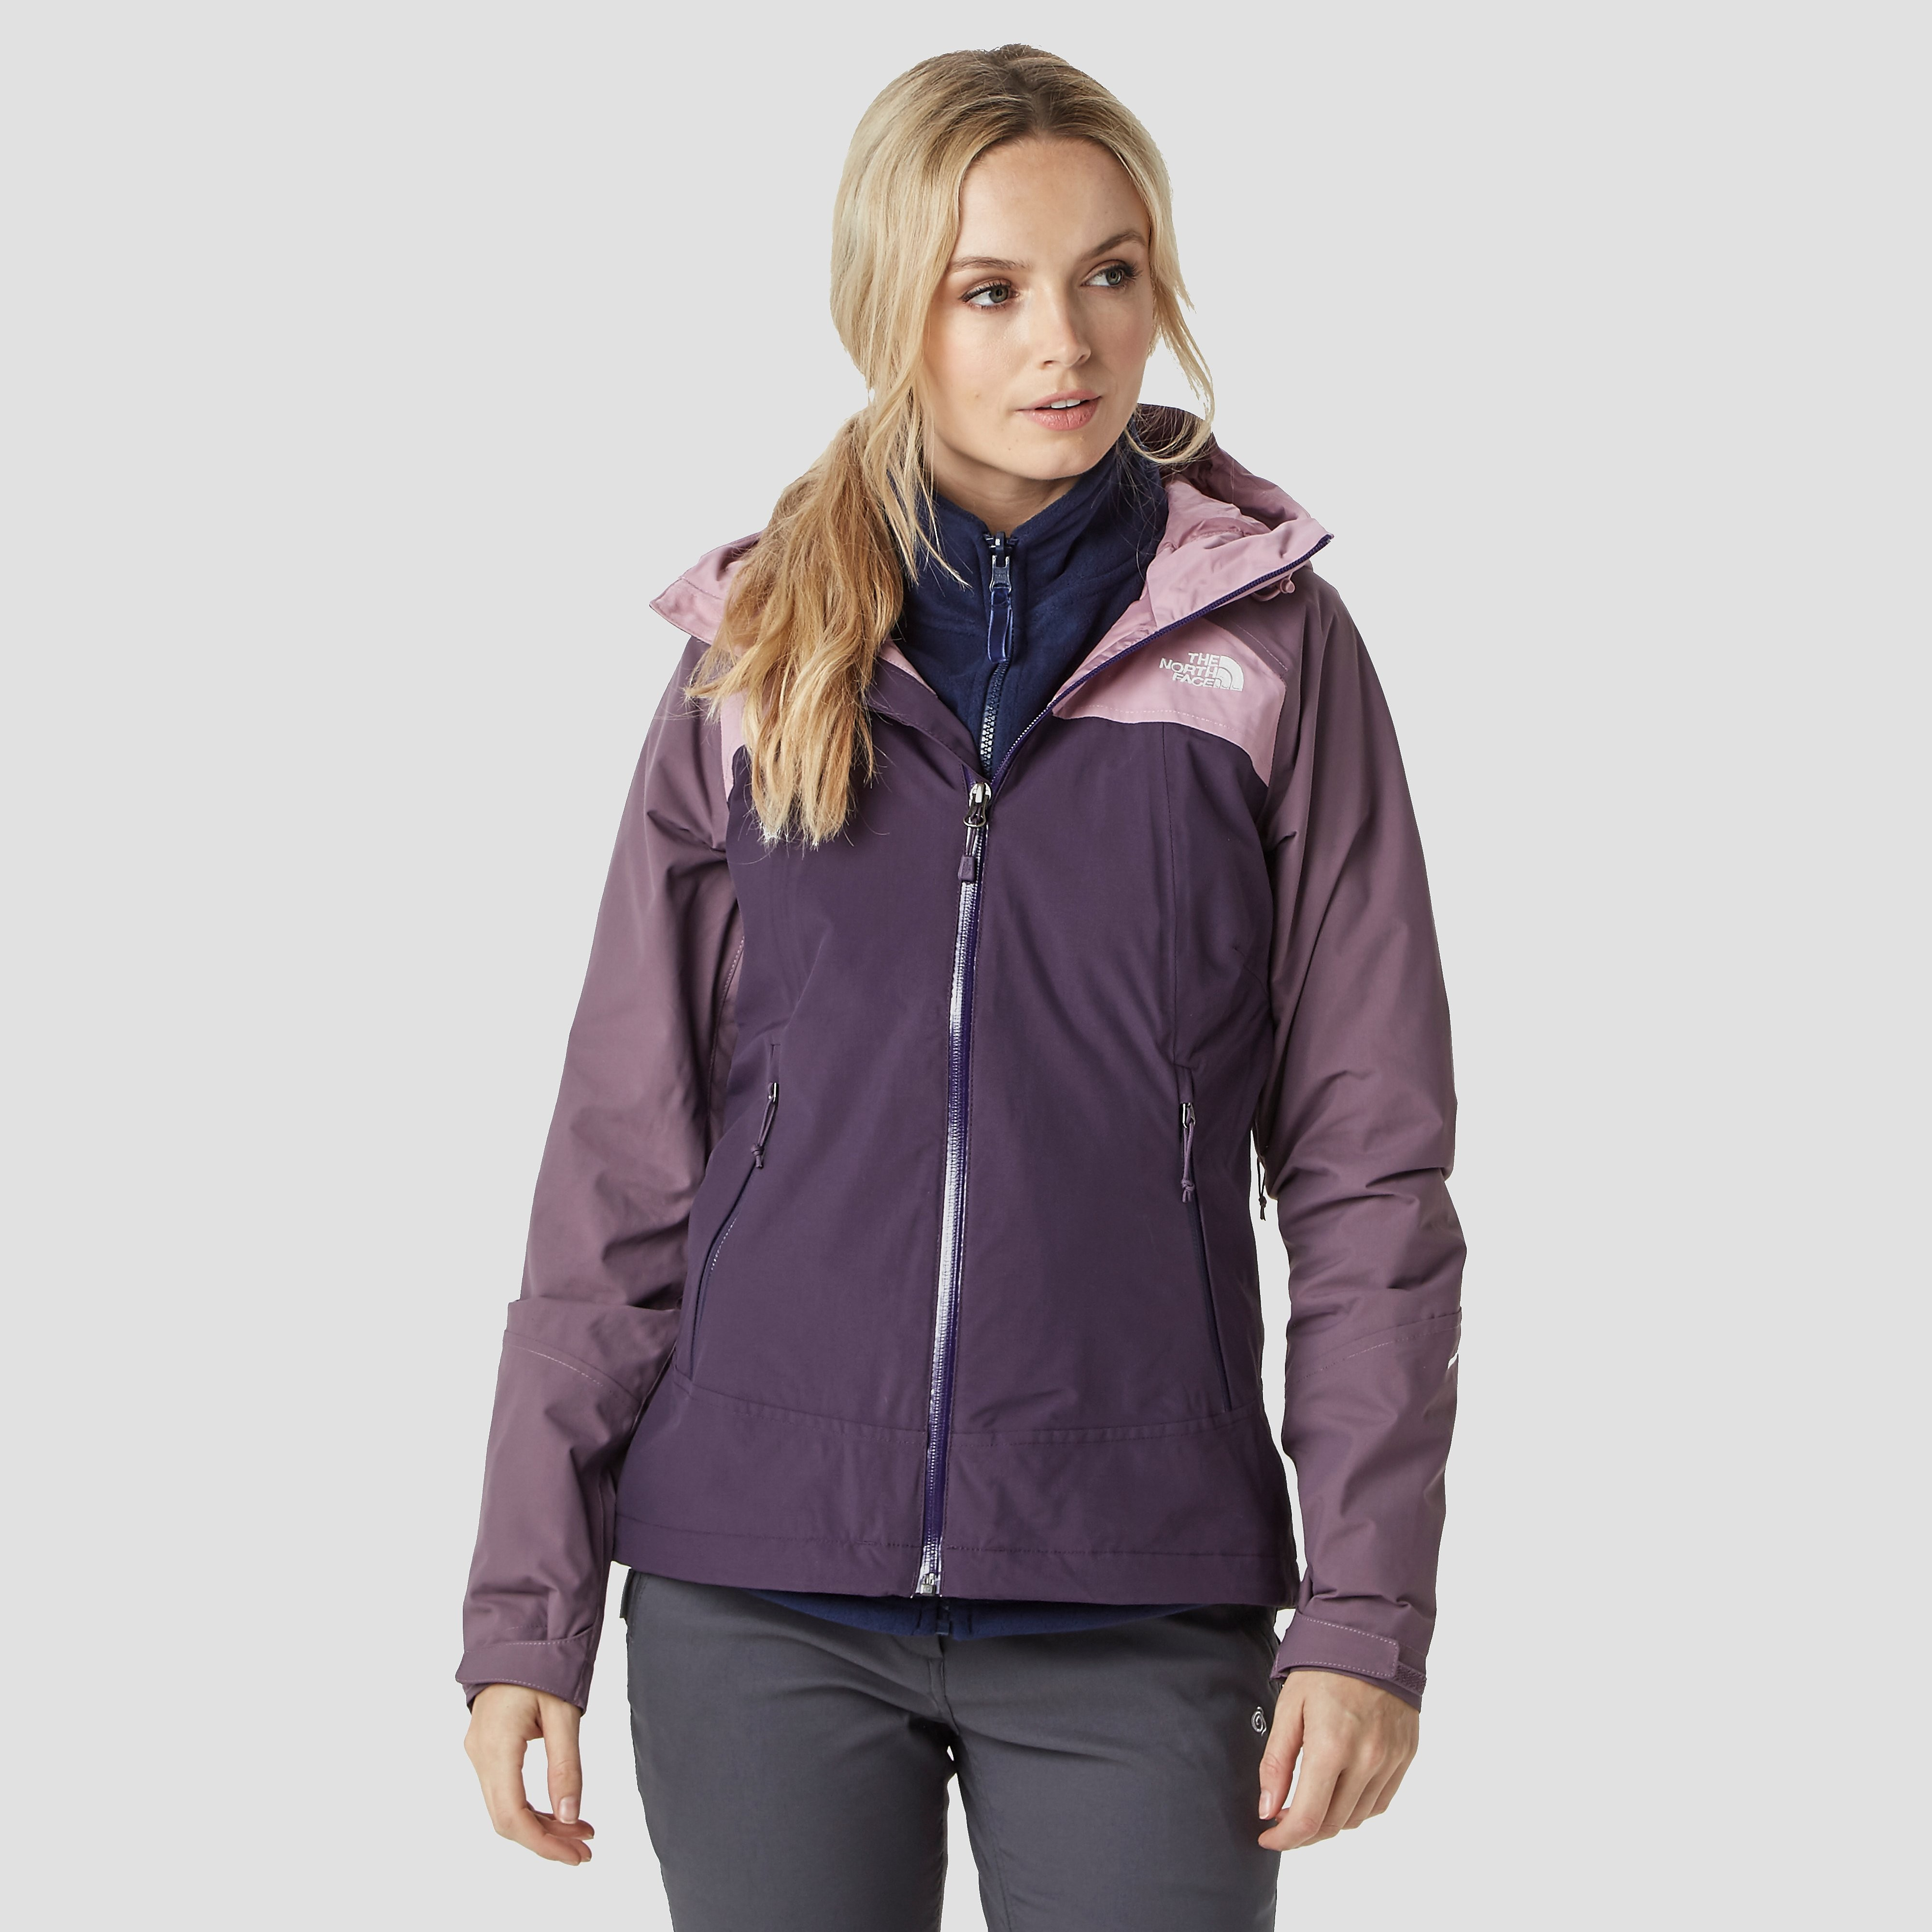 The North Face Stratos DryVent Jacket U2013 Womenu2019s   Jacket Compare U2013 Compare Outdoor Jacket Prices